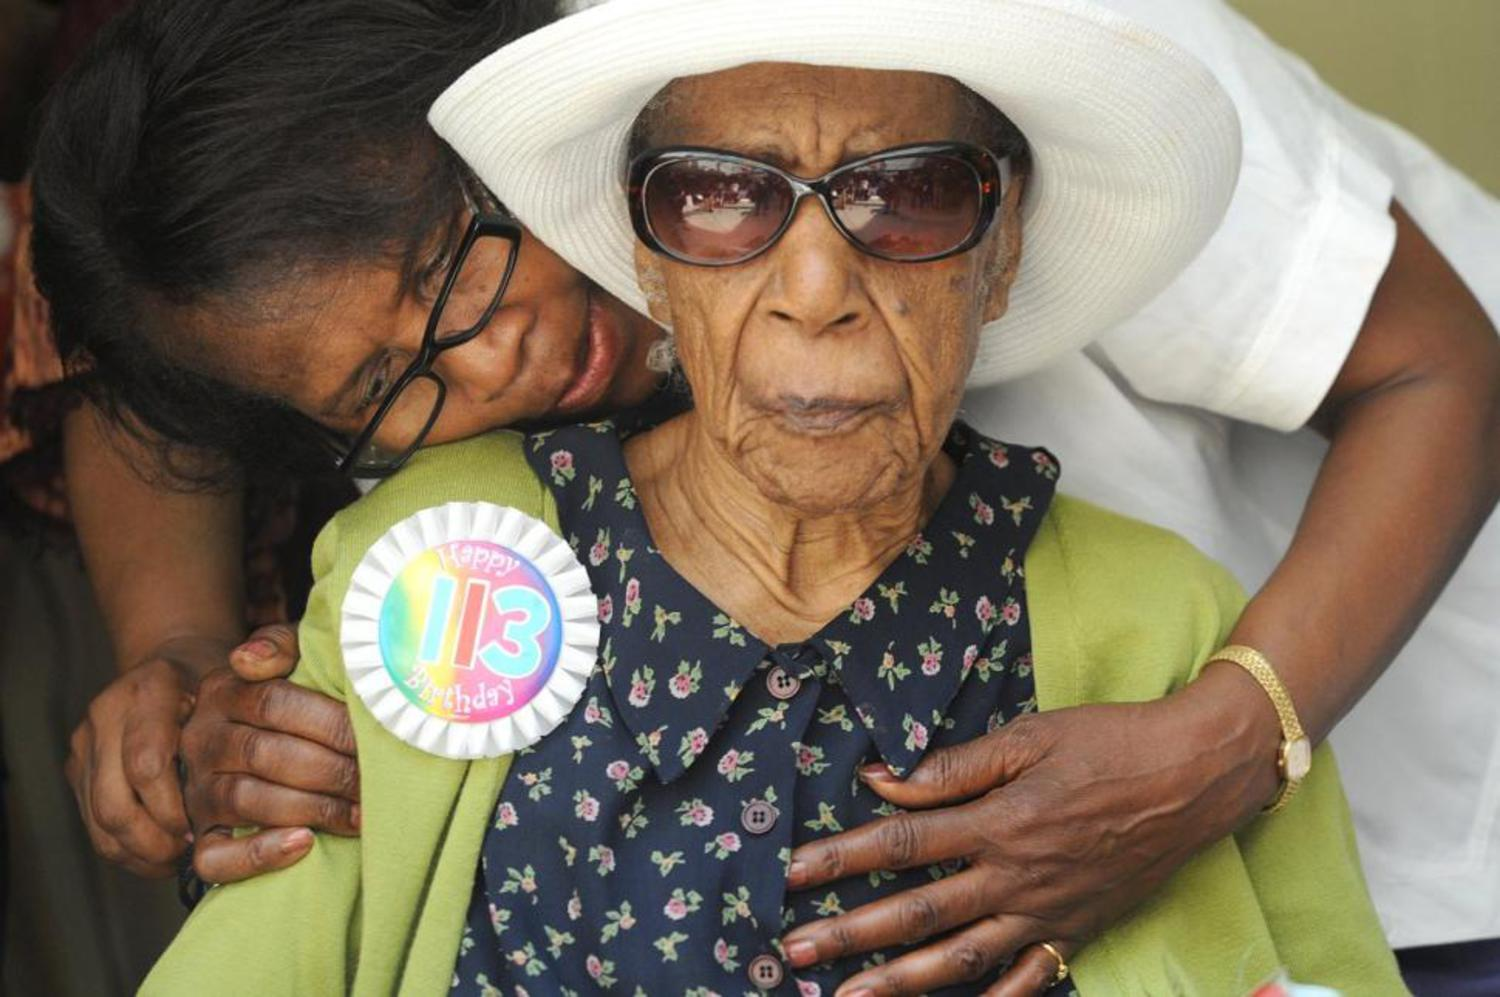 Miss Susie (Susannah Mushatt Jones) with her niece Lois Judge during her 113th birthday party in 2012.